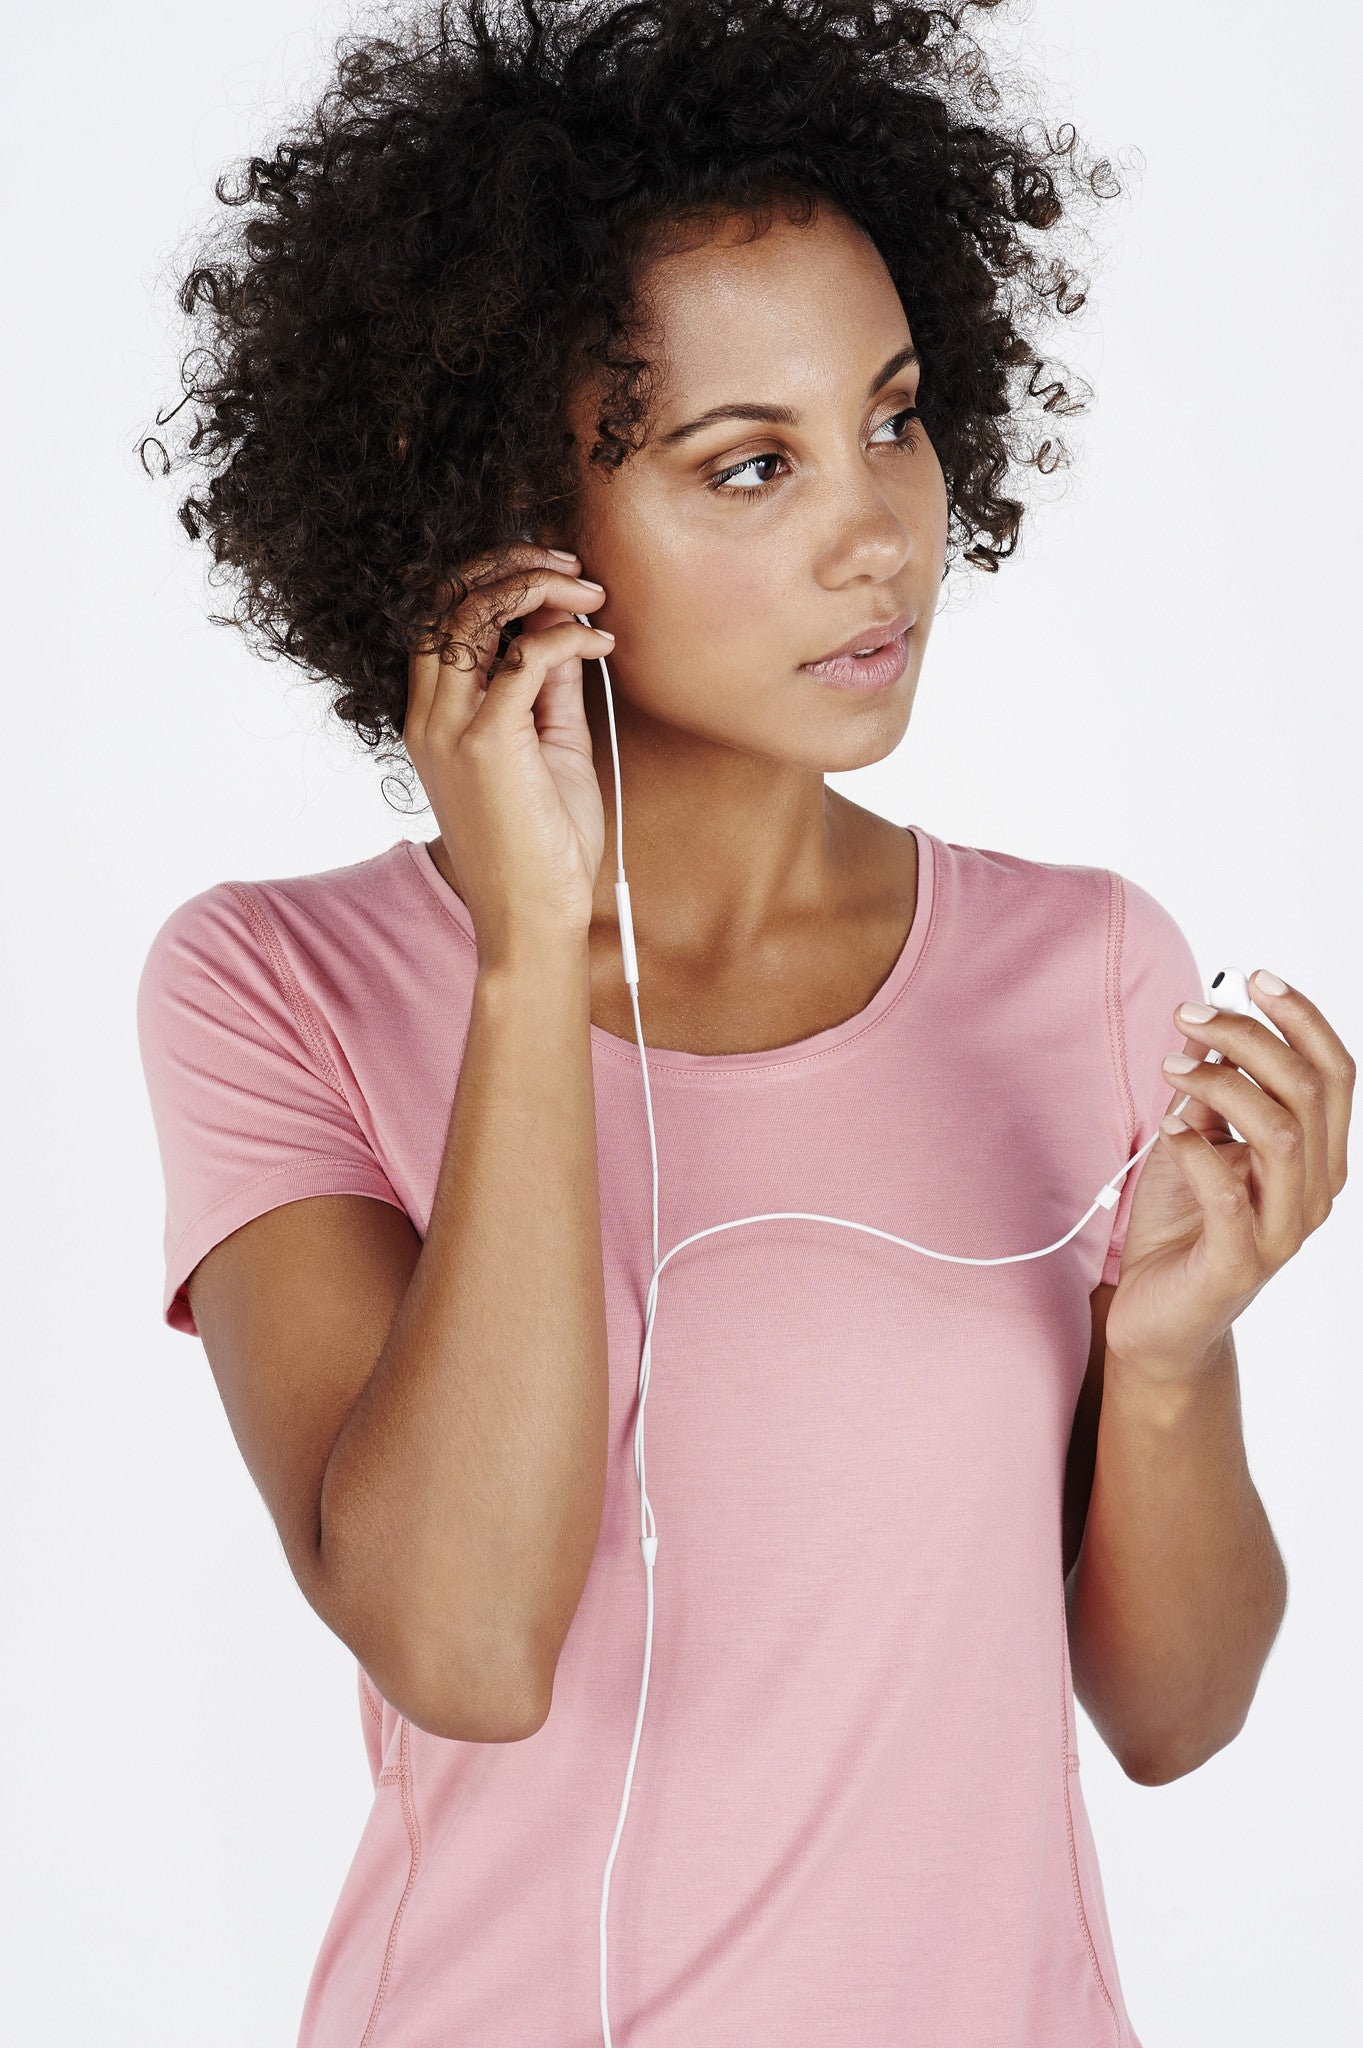 Woman with afro wearing coral BAM.U bamboo run tee putting in ipone ipod earphones